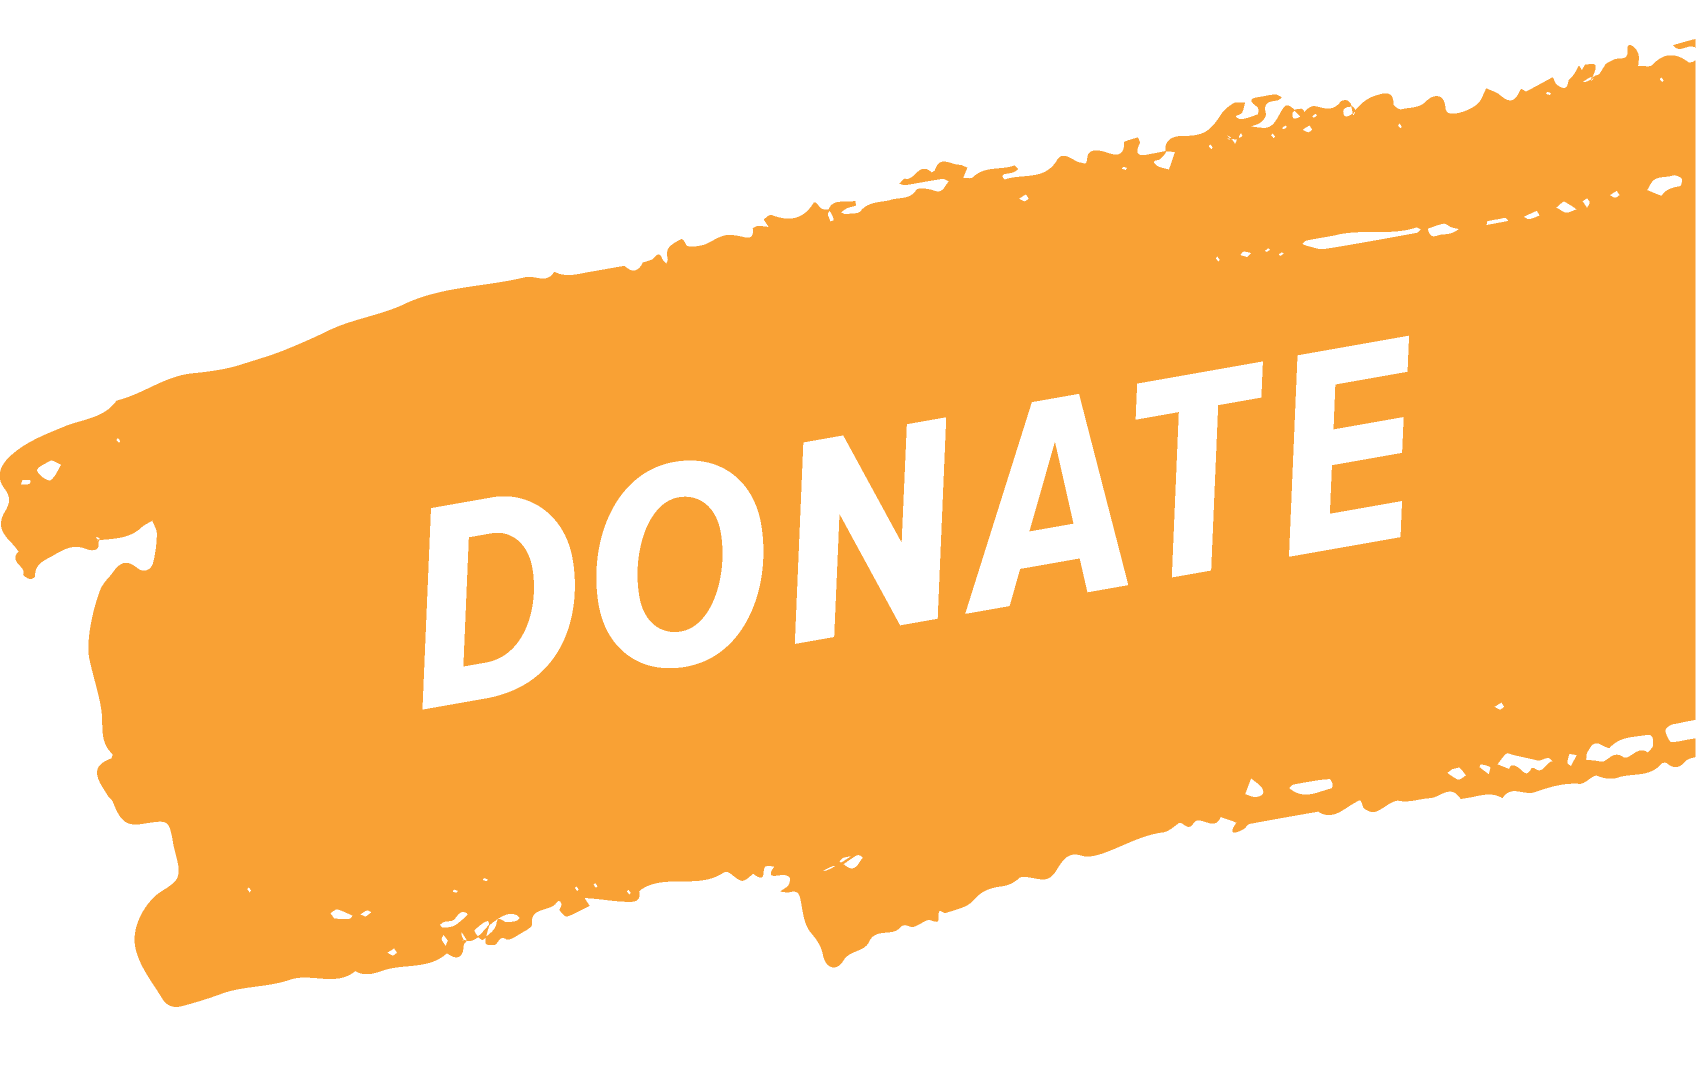 Donate Icon Background PNG Image.